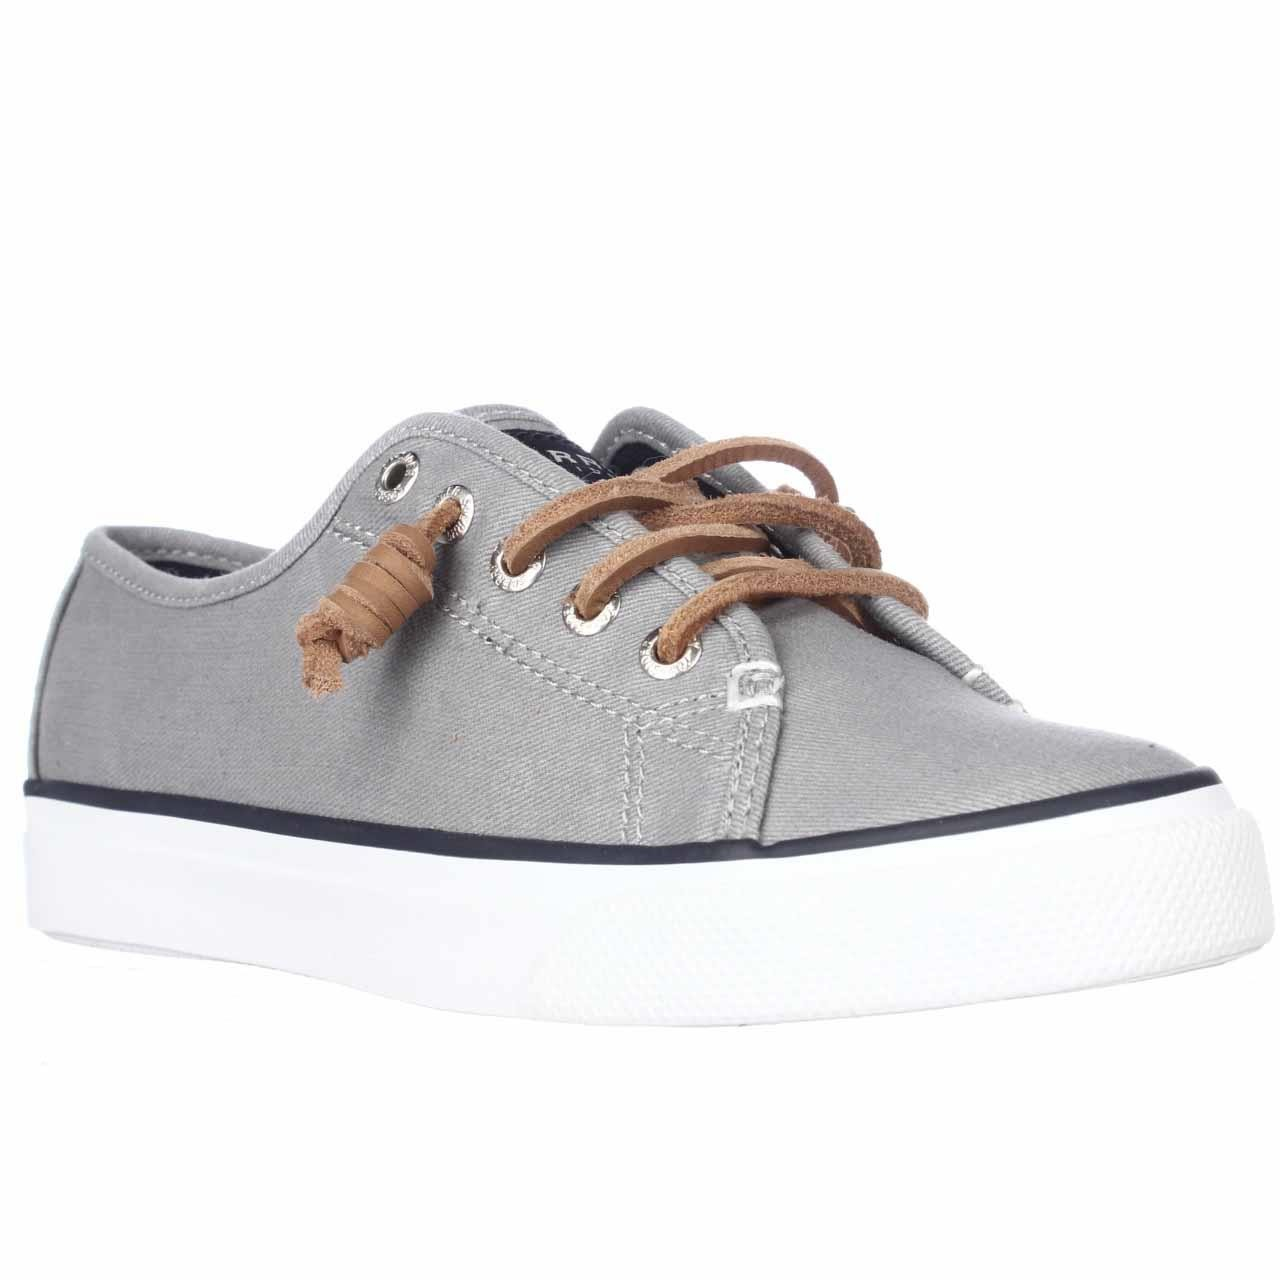 Sperry Top Sider Seacoast Fashion Sneakers In Gray For Men